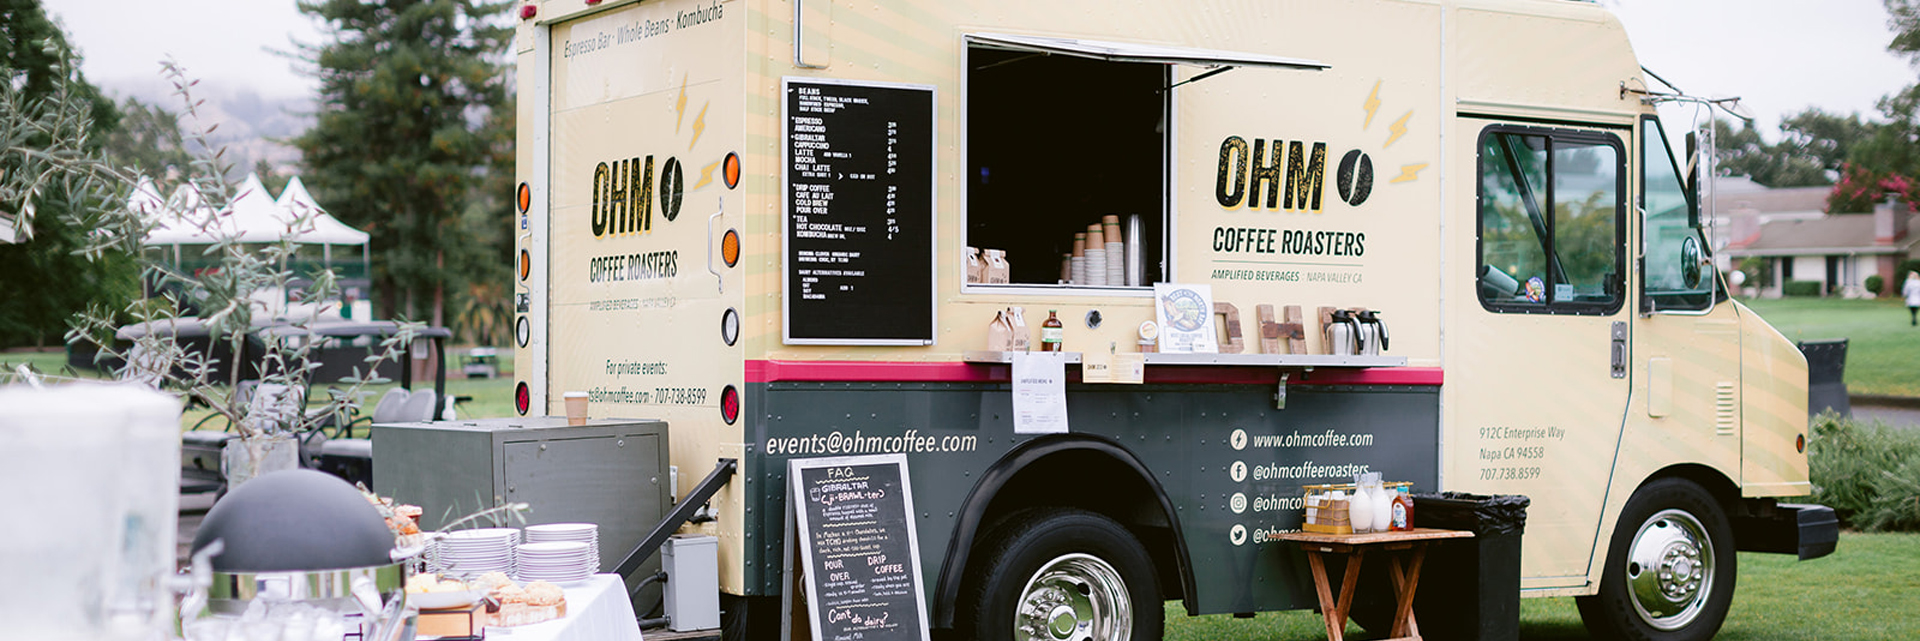 The OHM Coffee Roasters truck parked on a lawn at an event